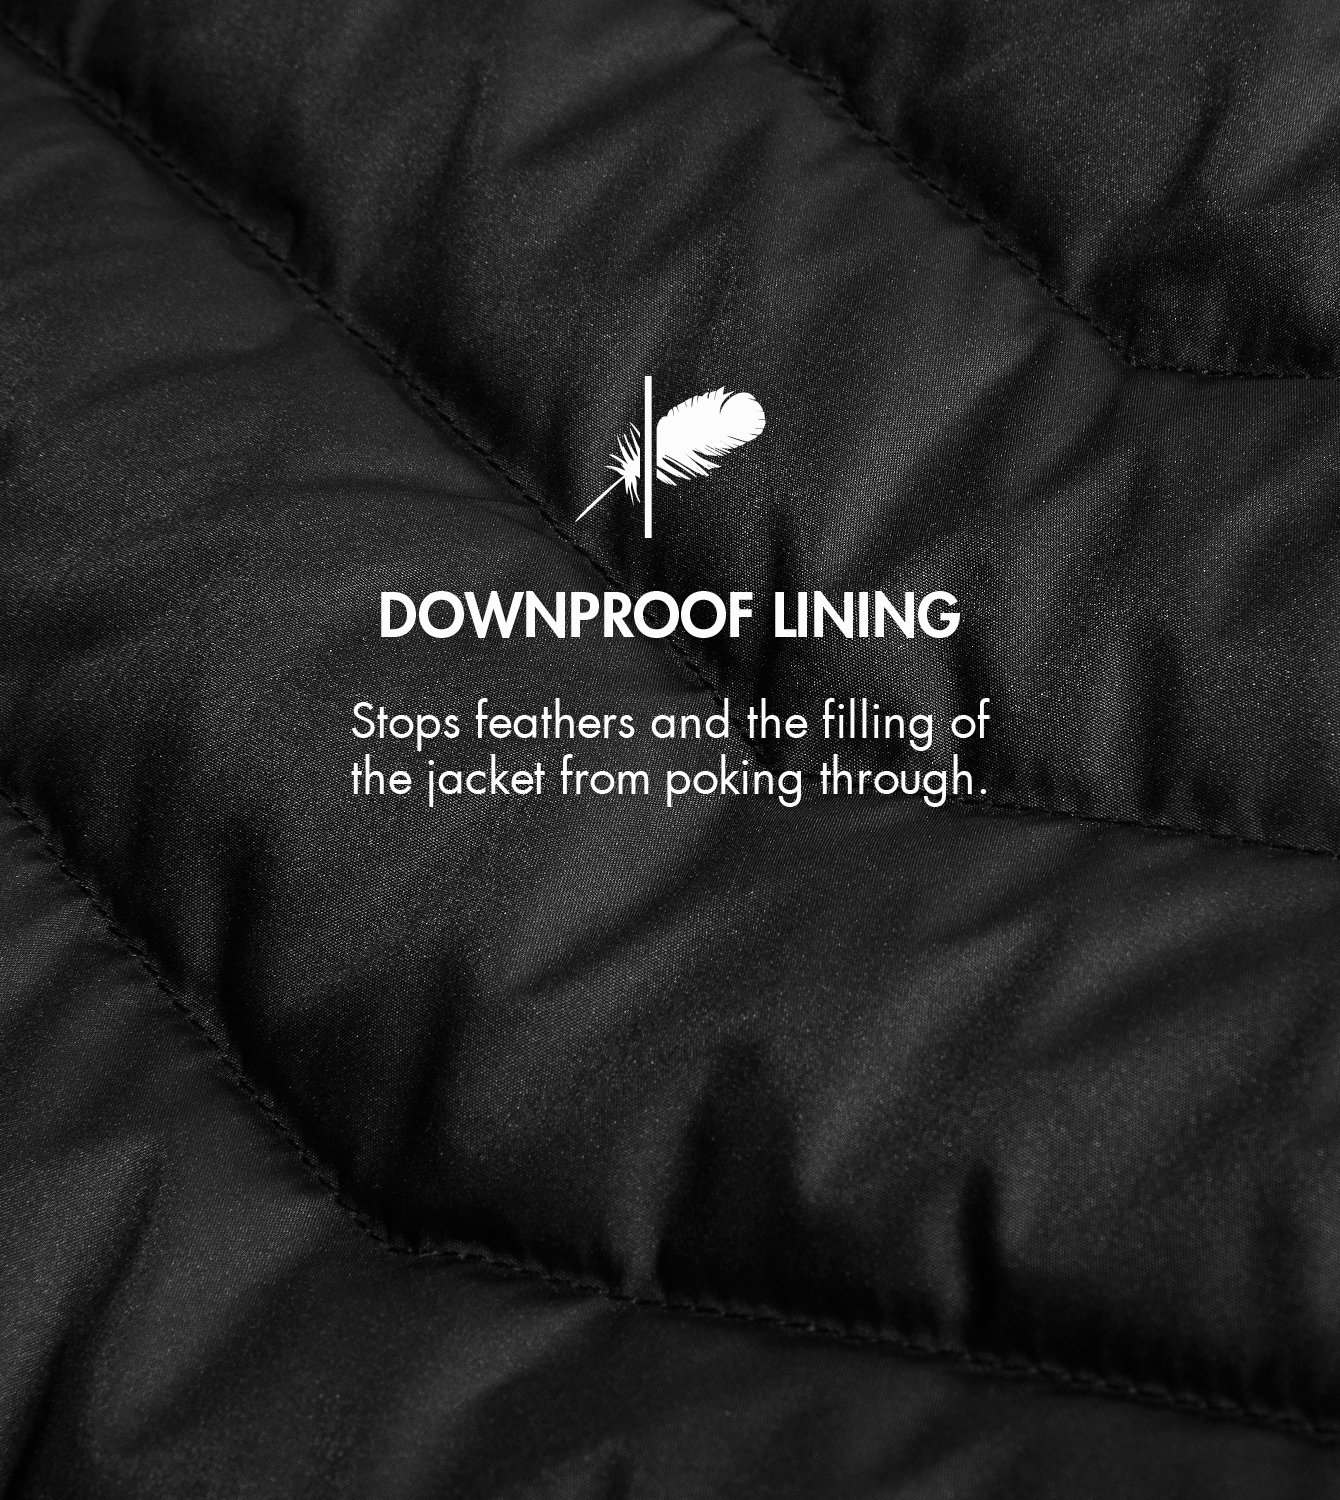 LAPASA Men's Down Jacket 600FP Packable Down Filled Jacket with Side Pockets YKK Zipped Men's Outdoor Winter Down Coats for Travel Hiking Climbing Skiing Casual M32 3